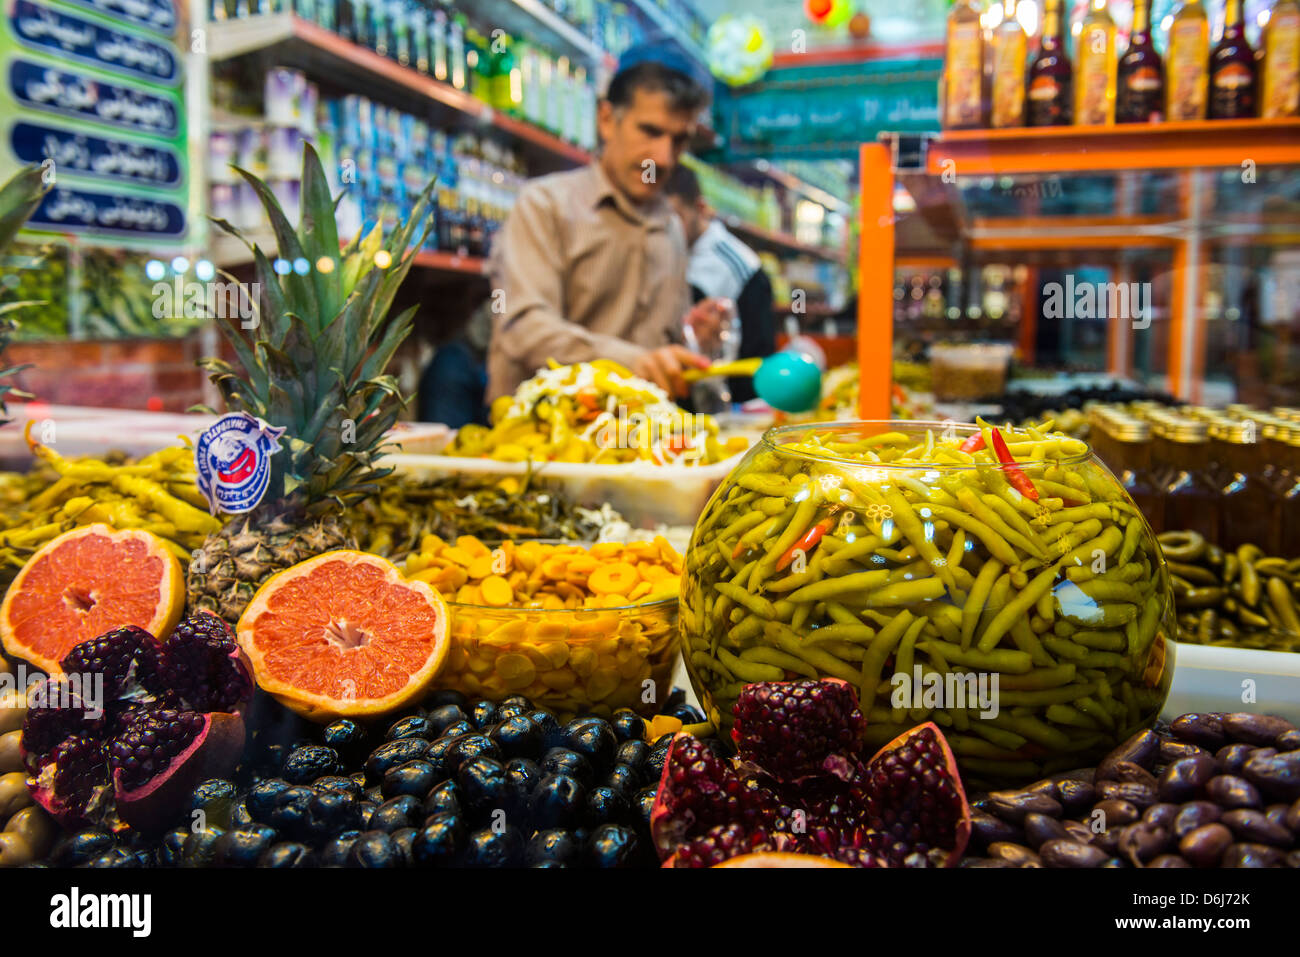 Kurdish food in the Bazaar of Sulaymaniyah, Iraq Kurdistan, Iraq, Middle East - Stock Image